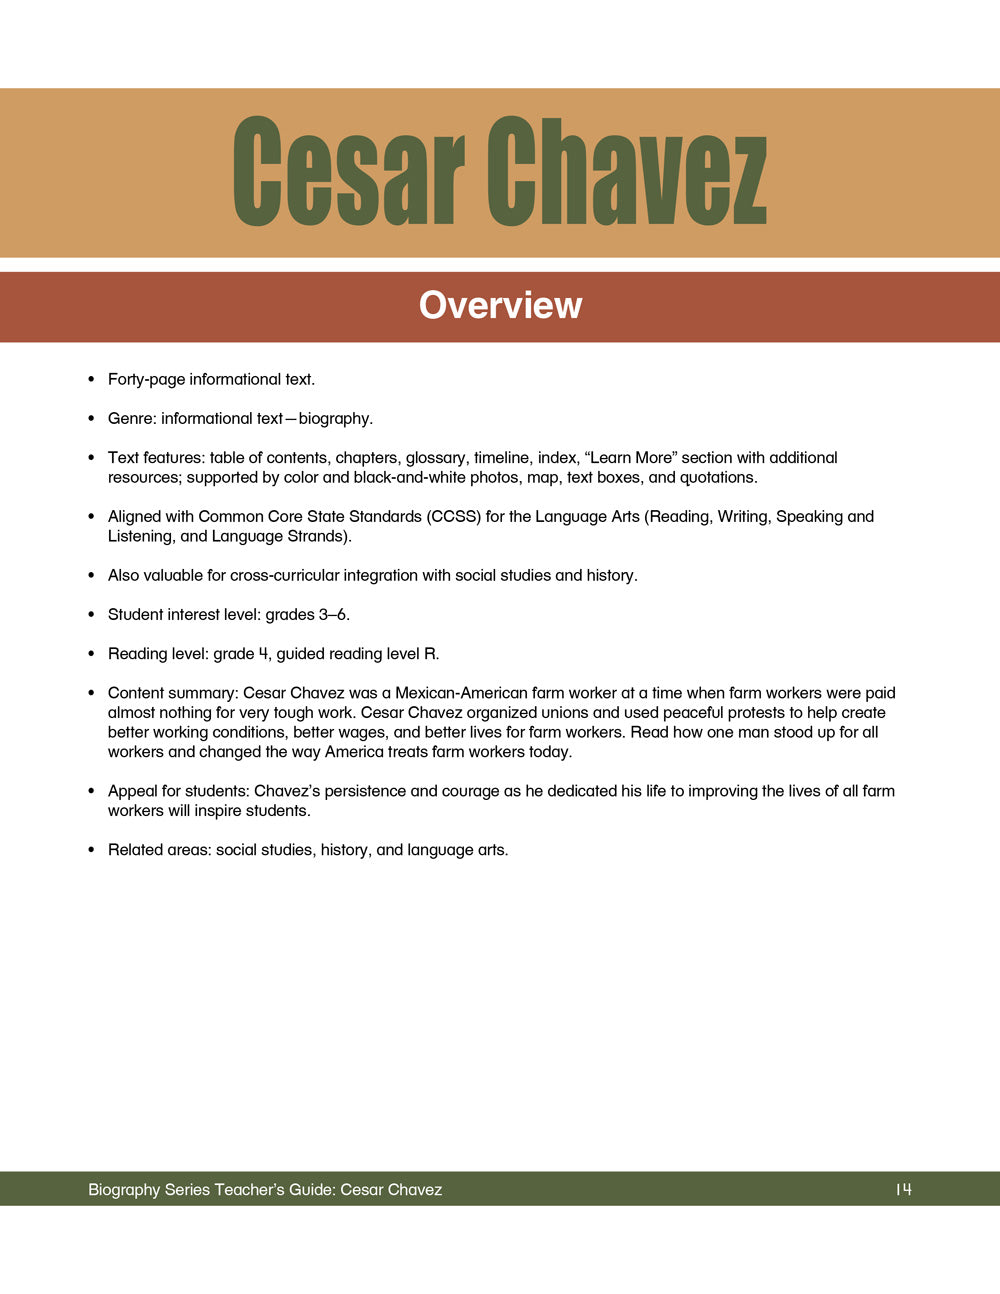 Cesar Chavez Teacher's Guide